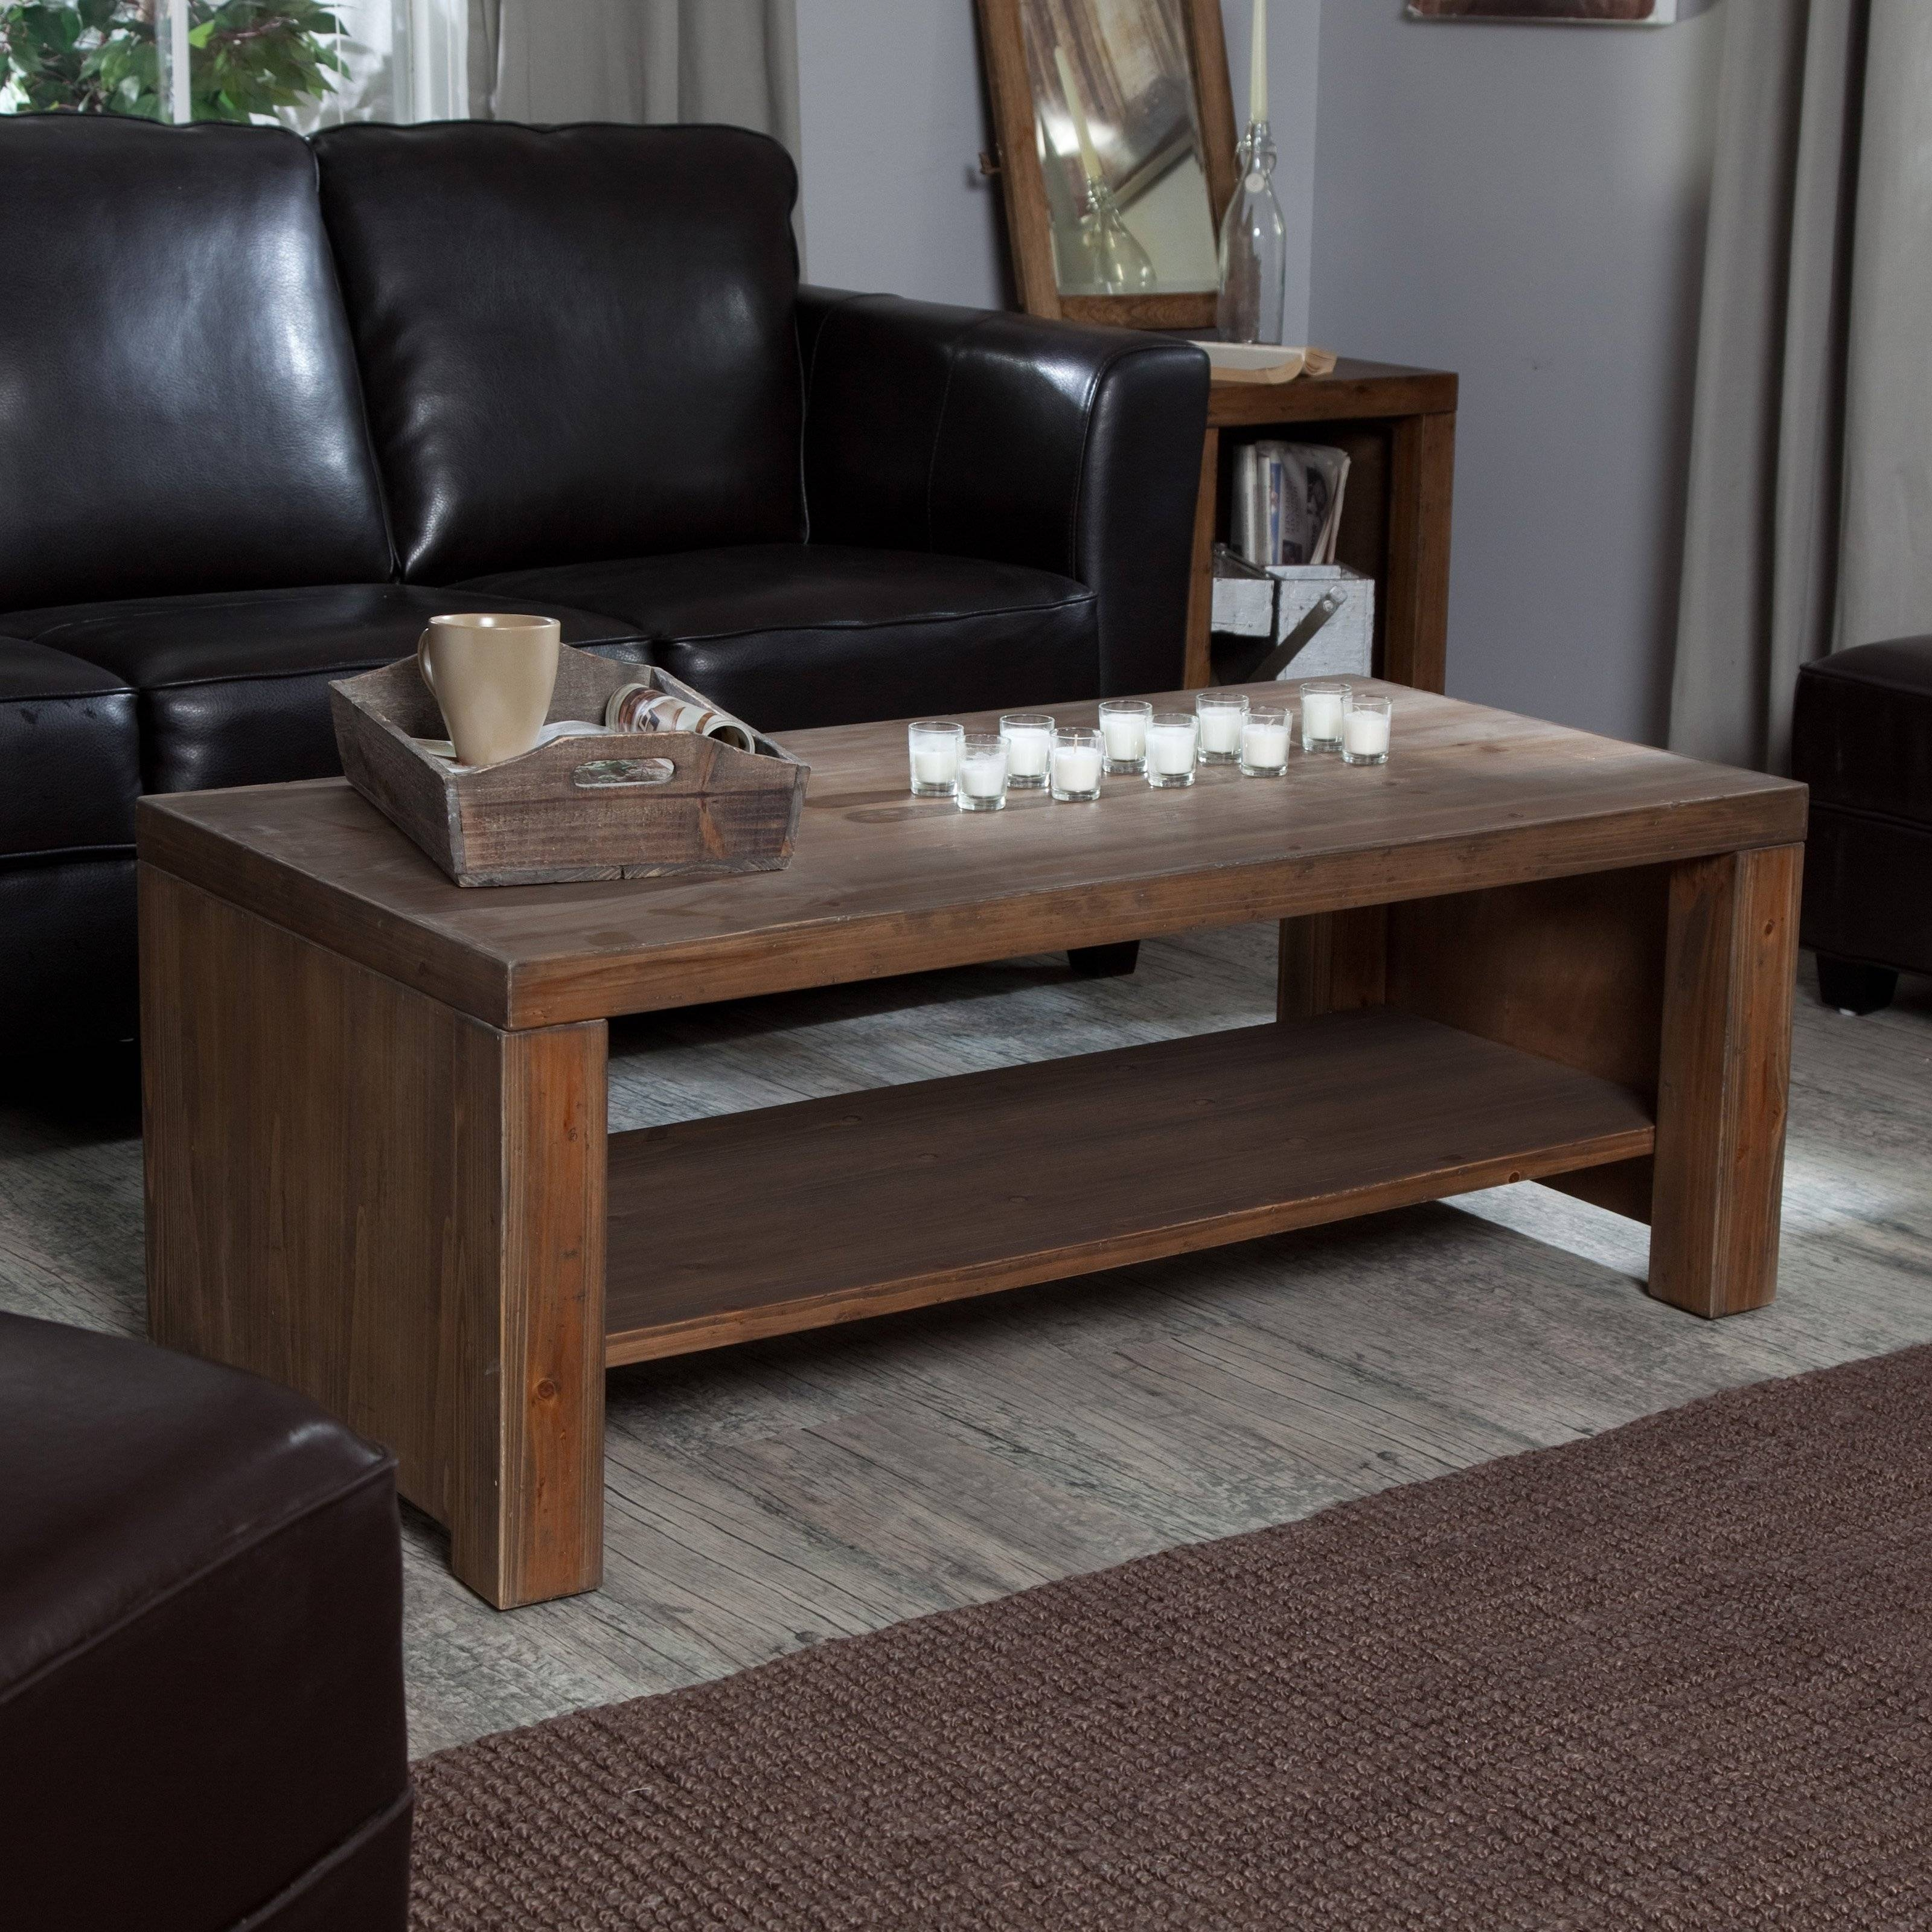 Belham Living Brinfield Rustic Solid Wood Coffee Table | Hayneedle Within Coffee Tables Solid Wood (View 14 of 30)